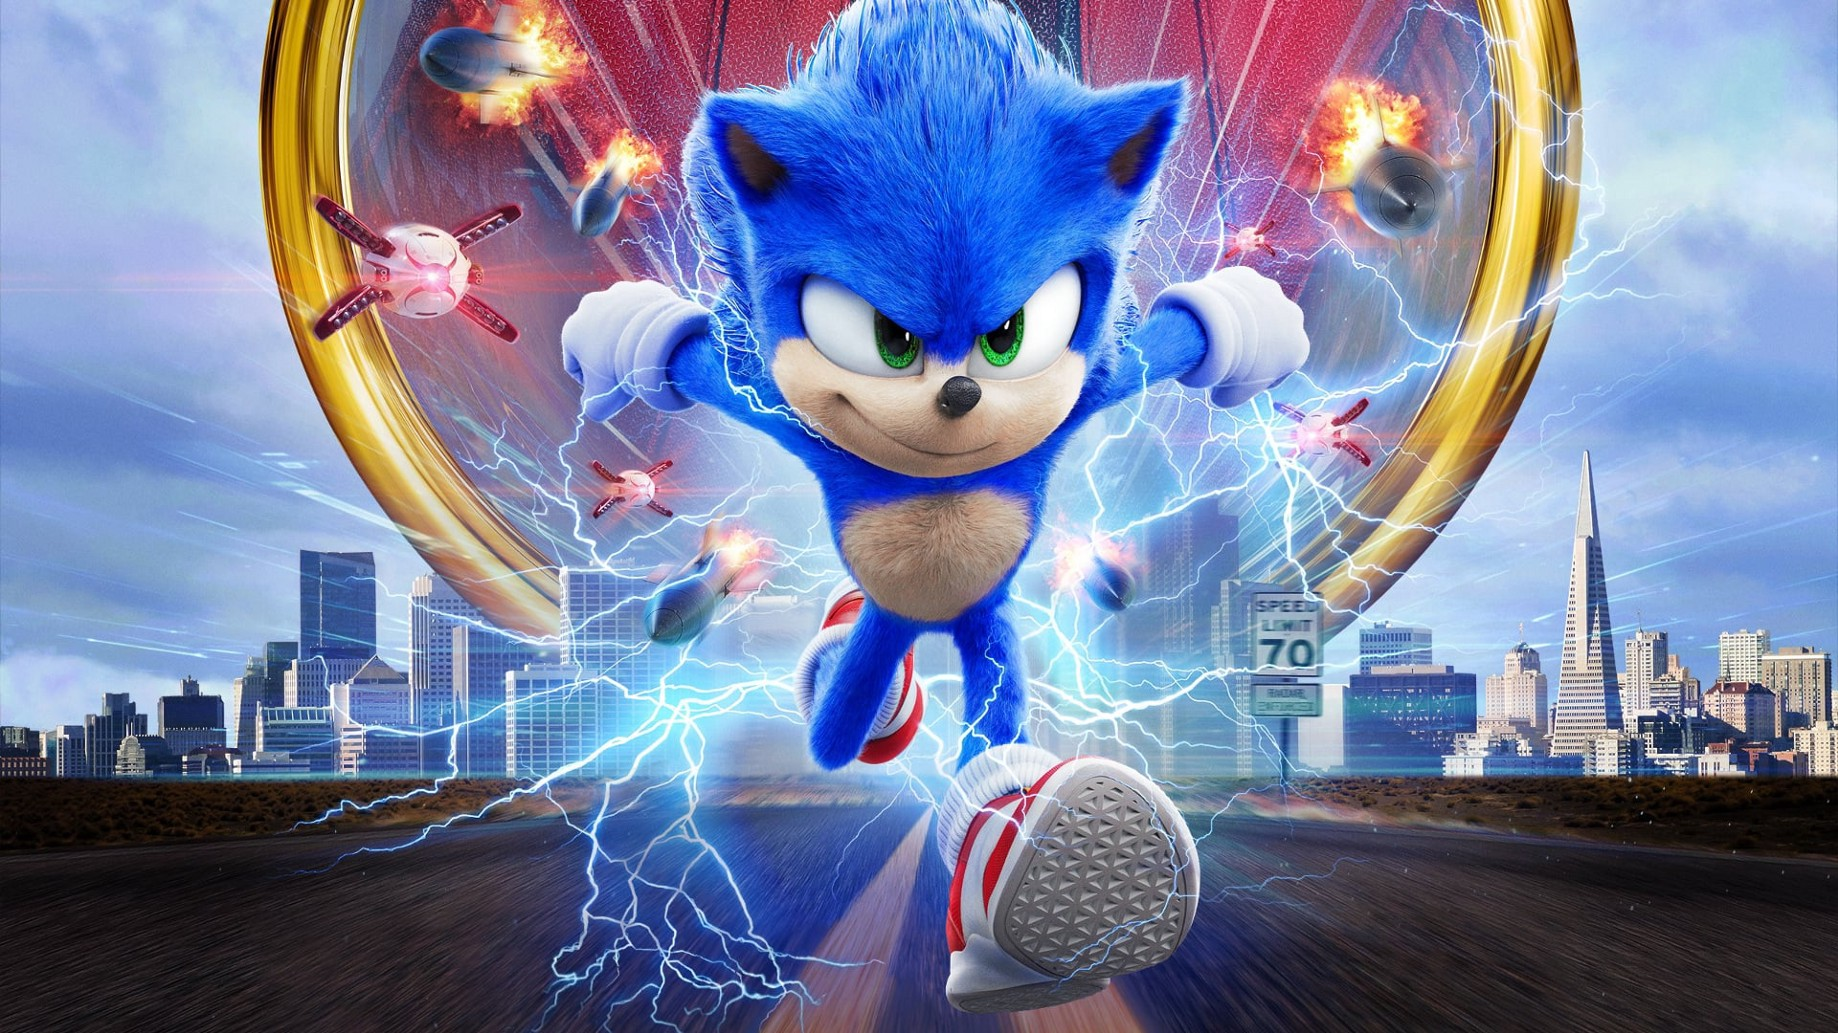 20•ONLINE Sonic Sonic the Hedgehog 20 Full Movies ...